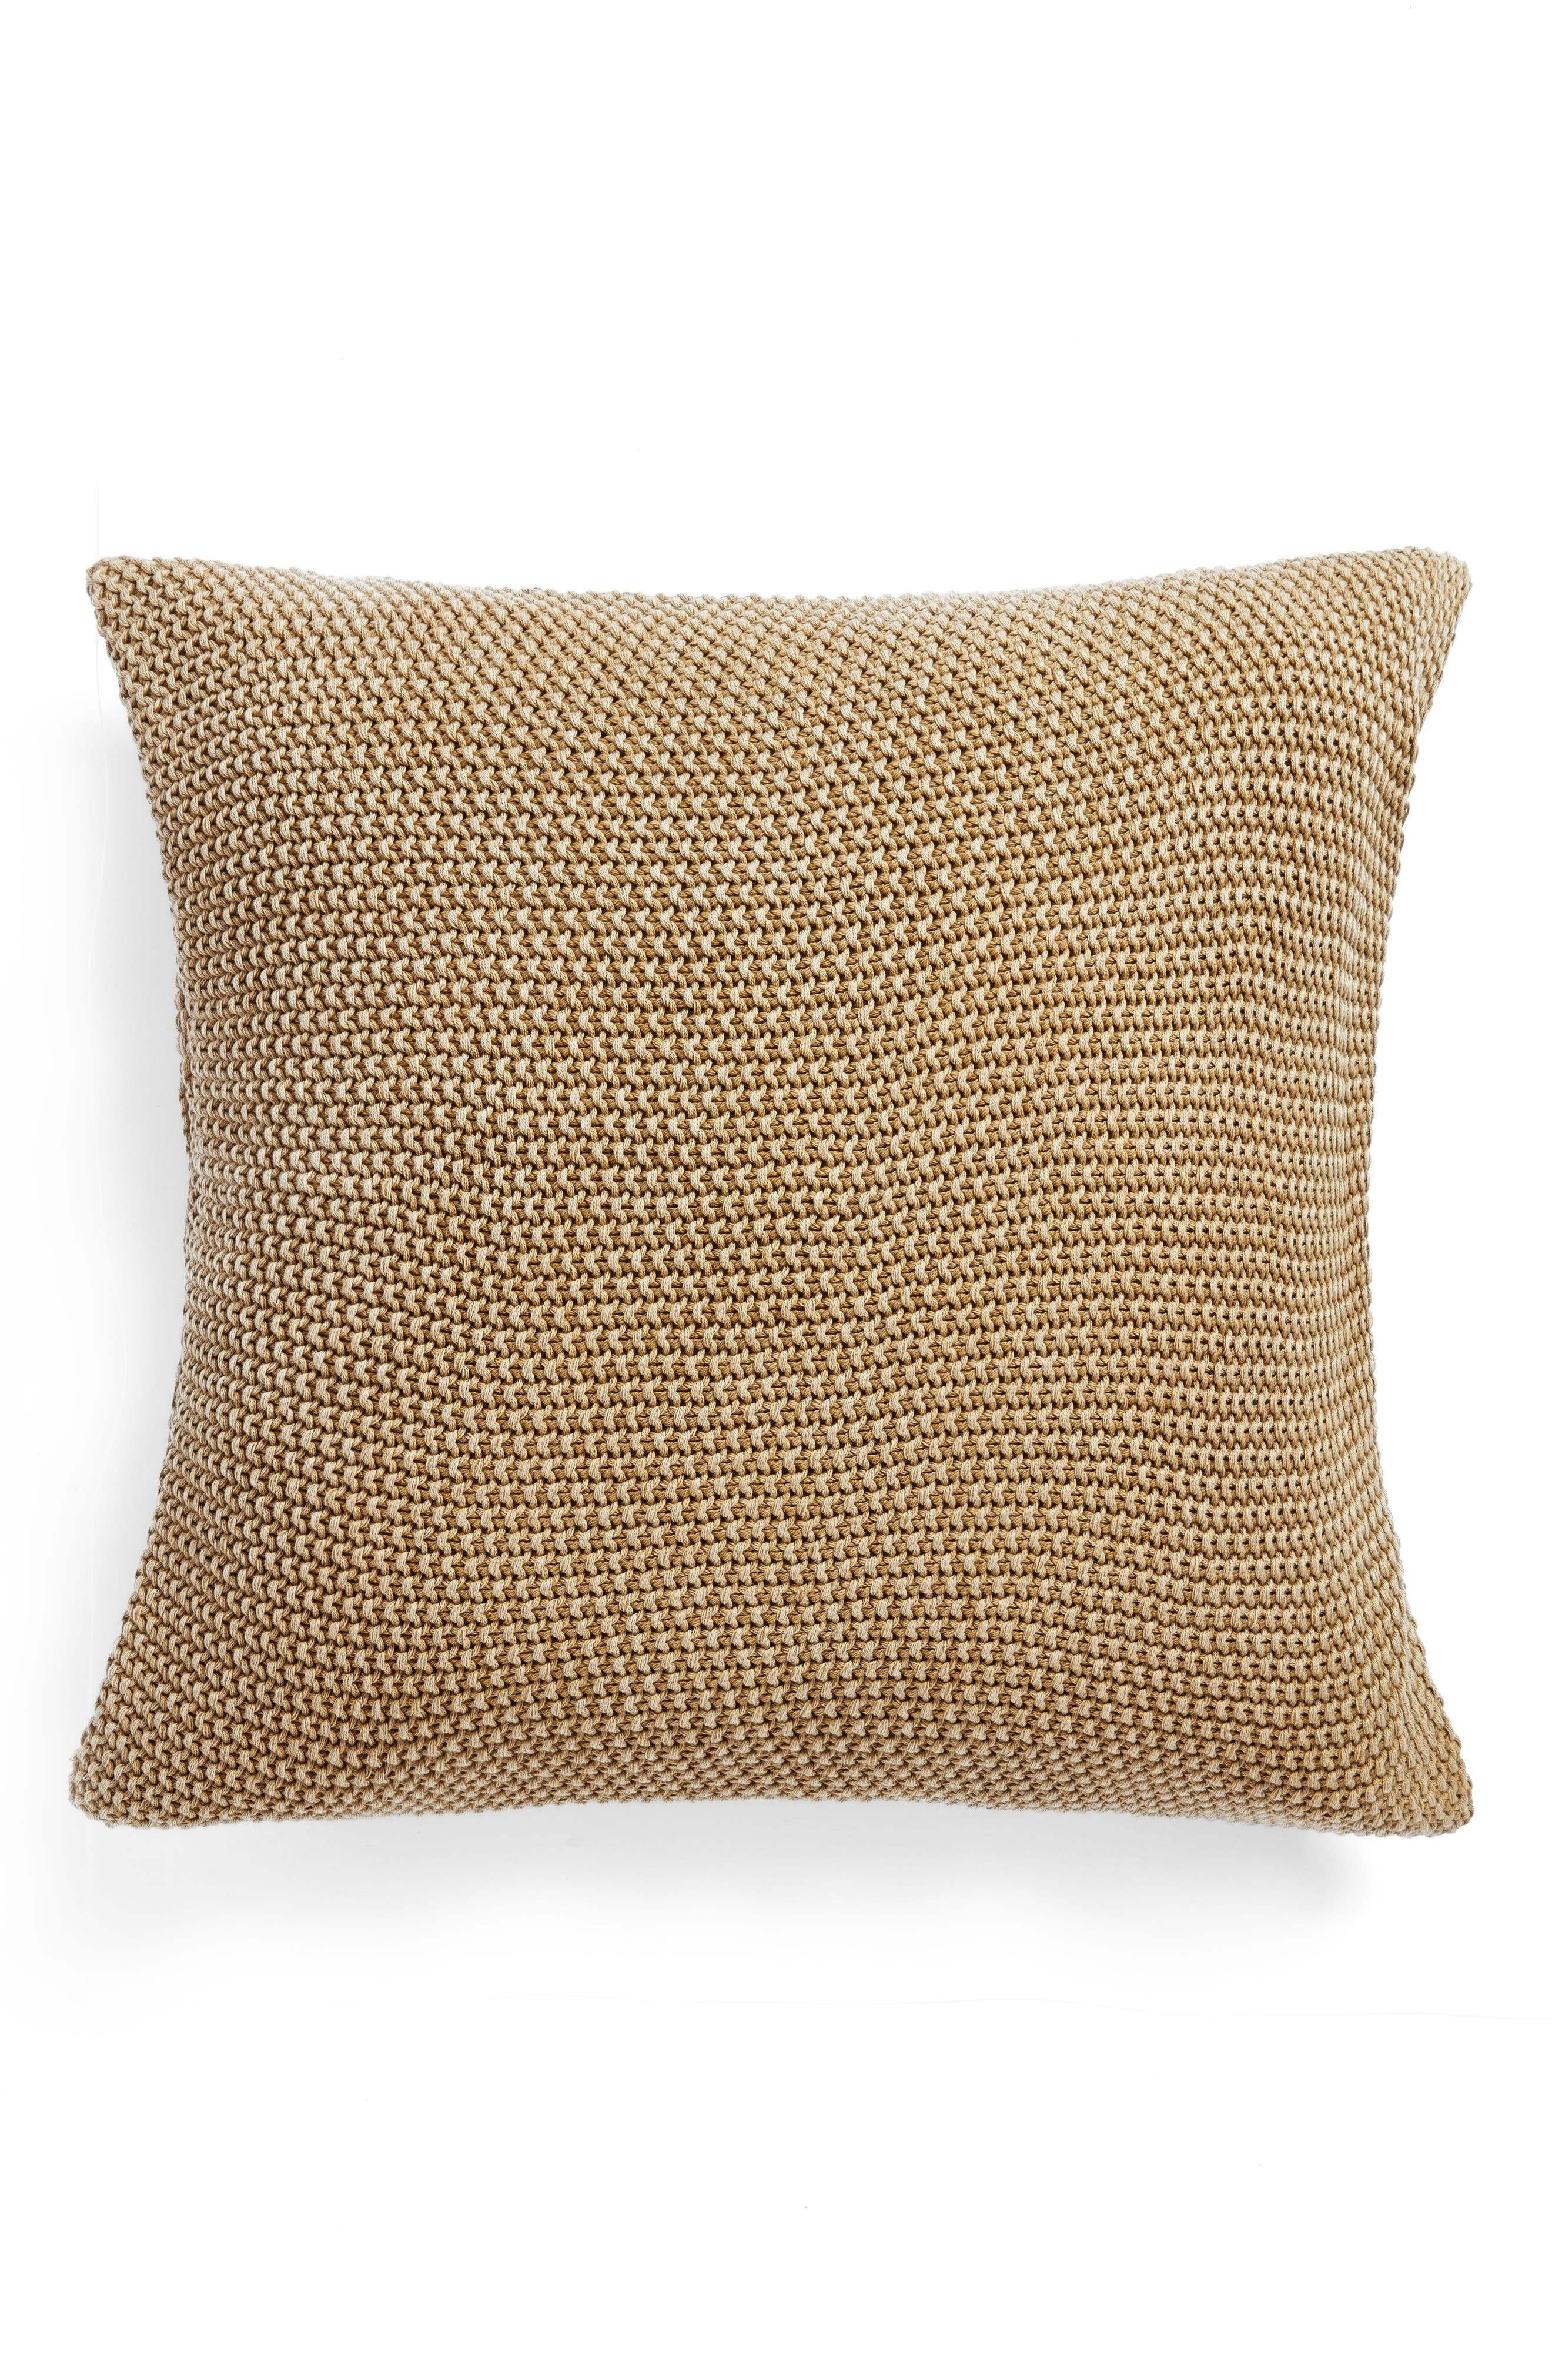 Seed Stitch Accent Pillow,                             Main thumbnail 1, color,                             Olive Estate